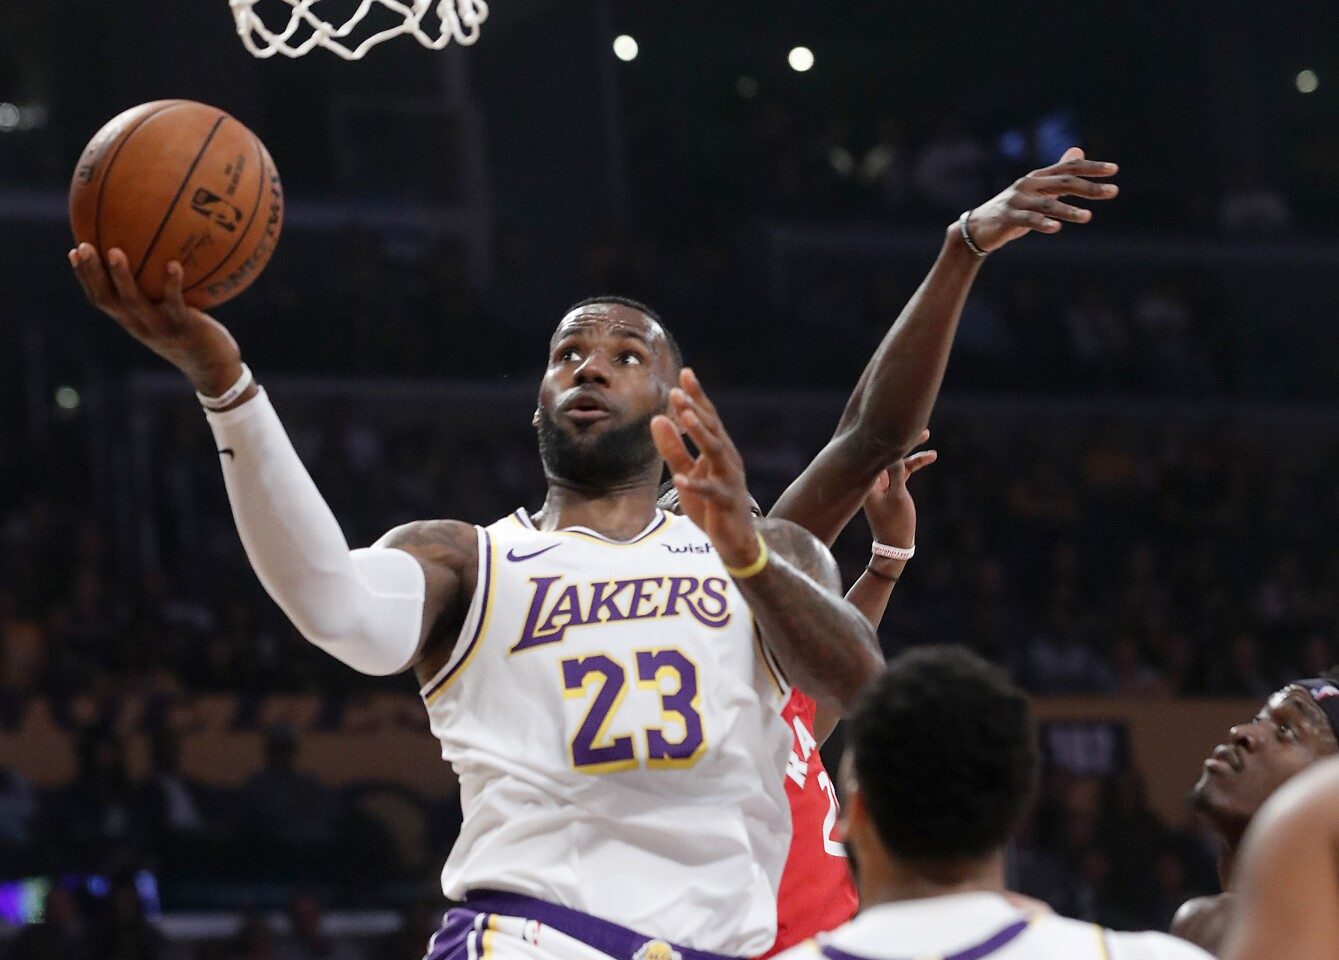 LOS ANGELES, CALIF. - NOV. 10, 2019. Lakers forward LeBron James drives to basket against the Raptors in the first quarter at Staples Center in Los Angeles on Sunday night, Nov. 10, 2019. (Luis Sinco/Los Angeles Times)